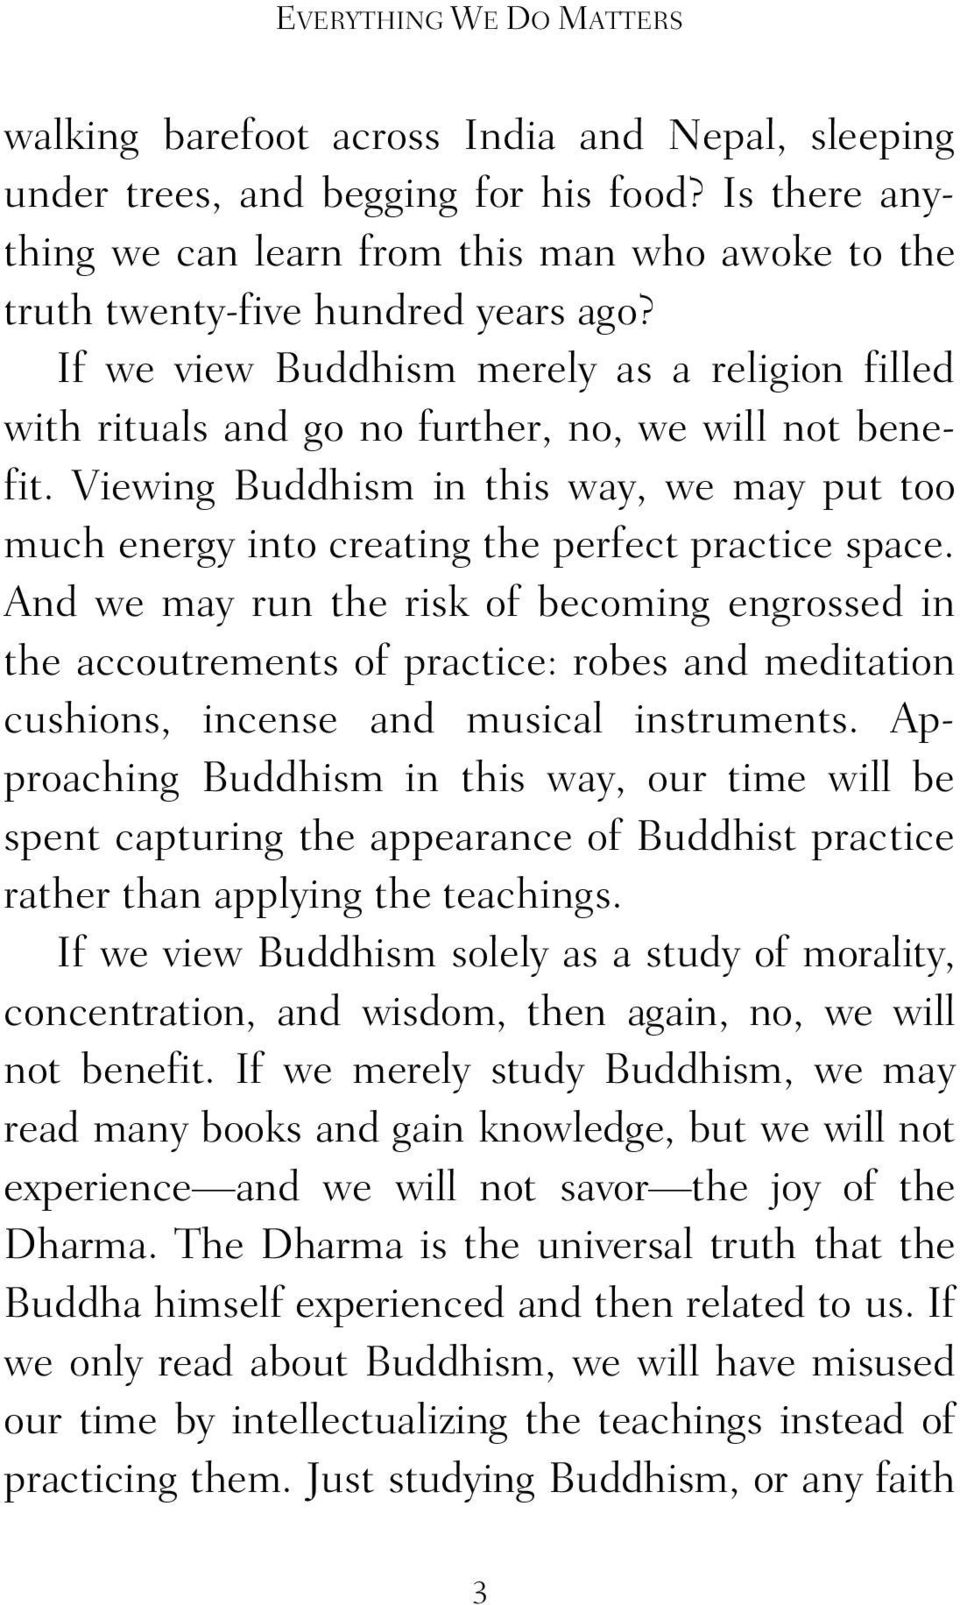 If we view Buddhism merely as a religion filled with rituals and go no further, no, we will not benefit.